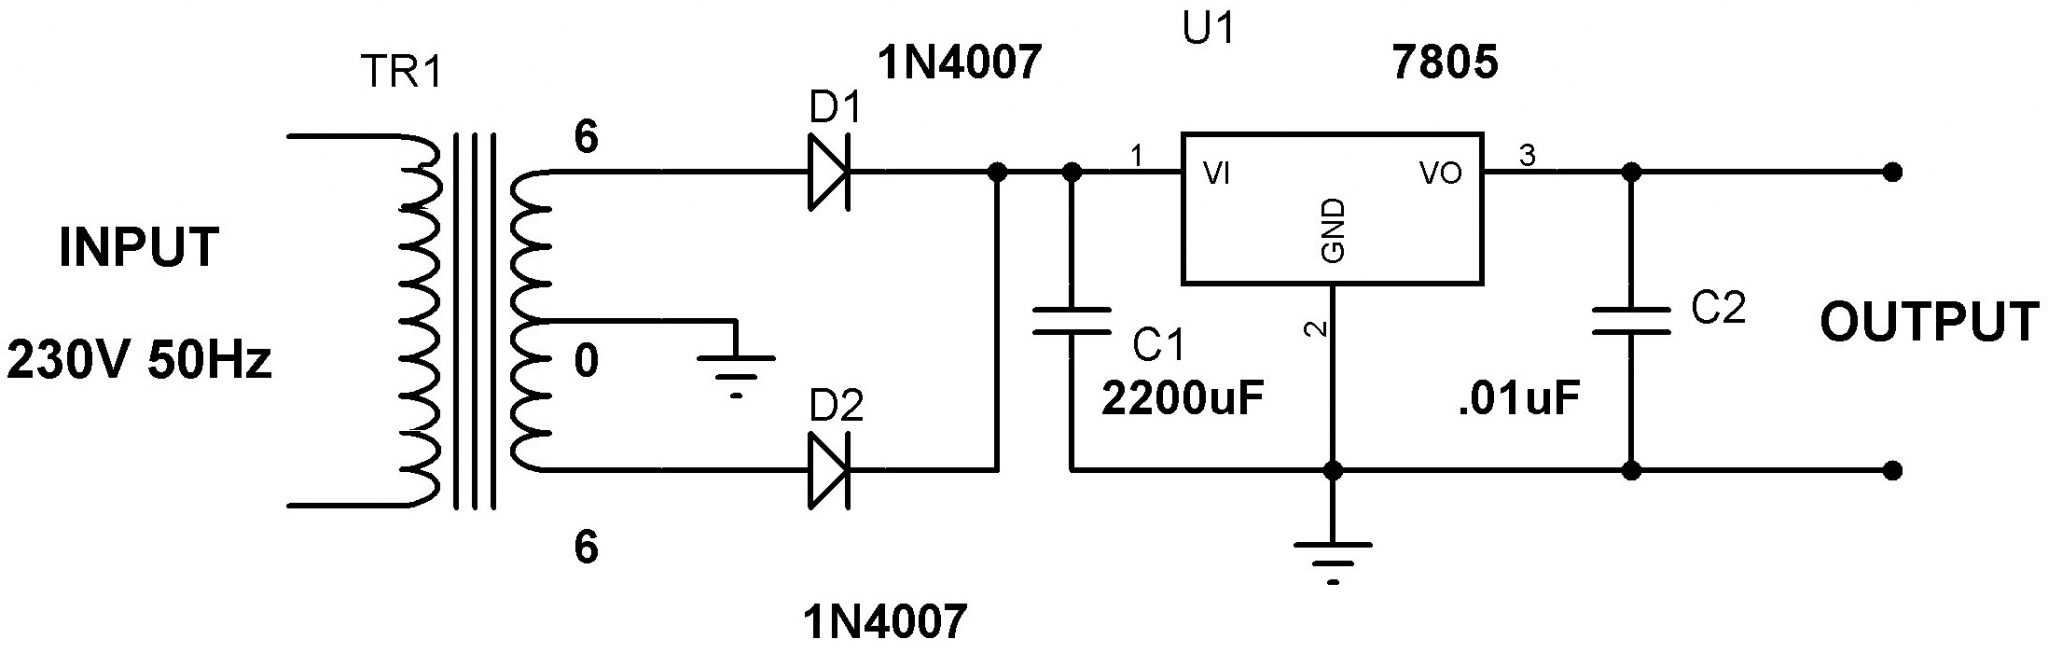 v power supply using  voltage regulator with design, circuit diagram